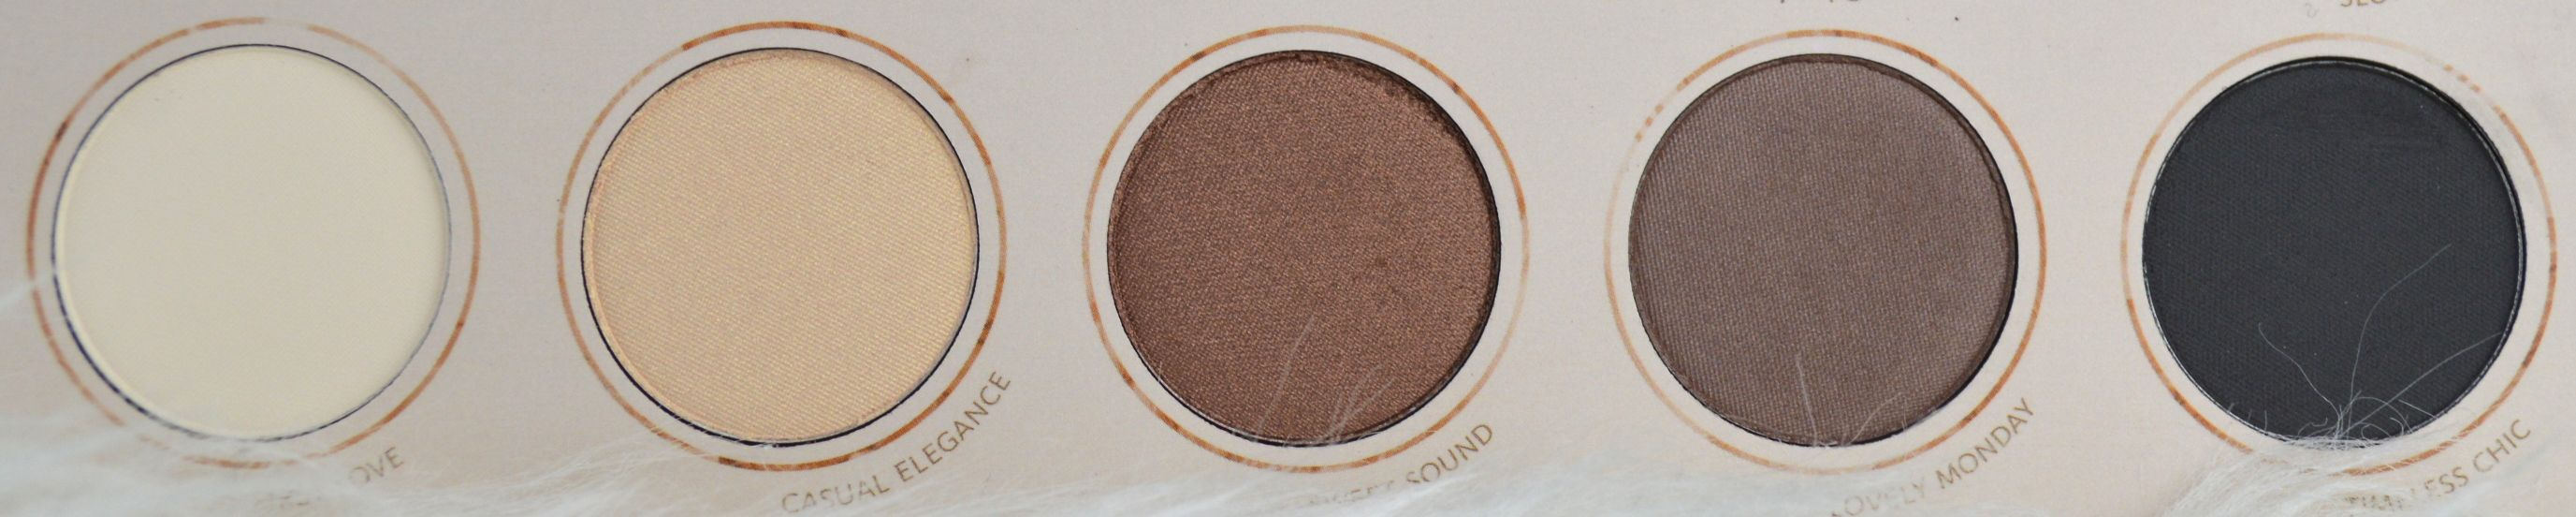 zoeva_naturally_yours_palette_review_mikalicious_2_reihe